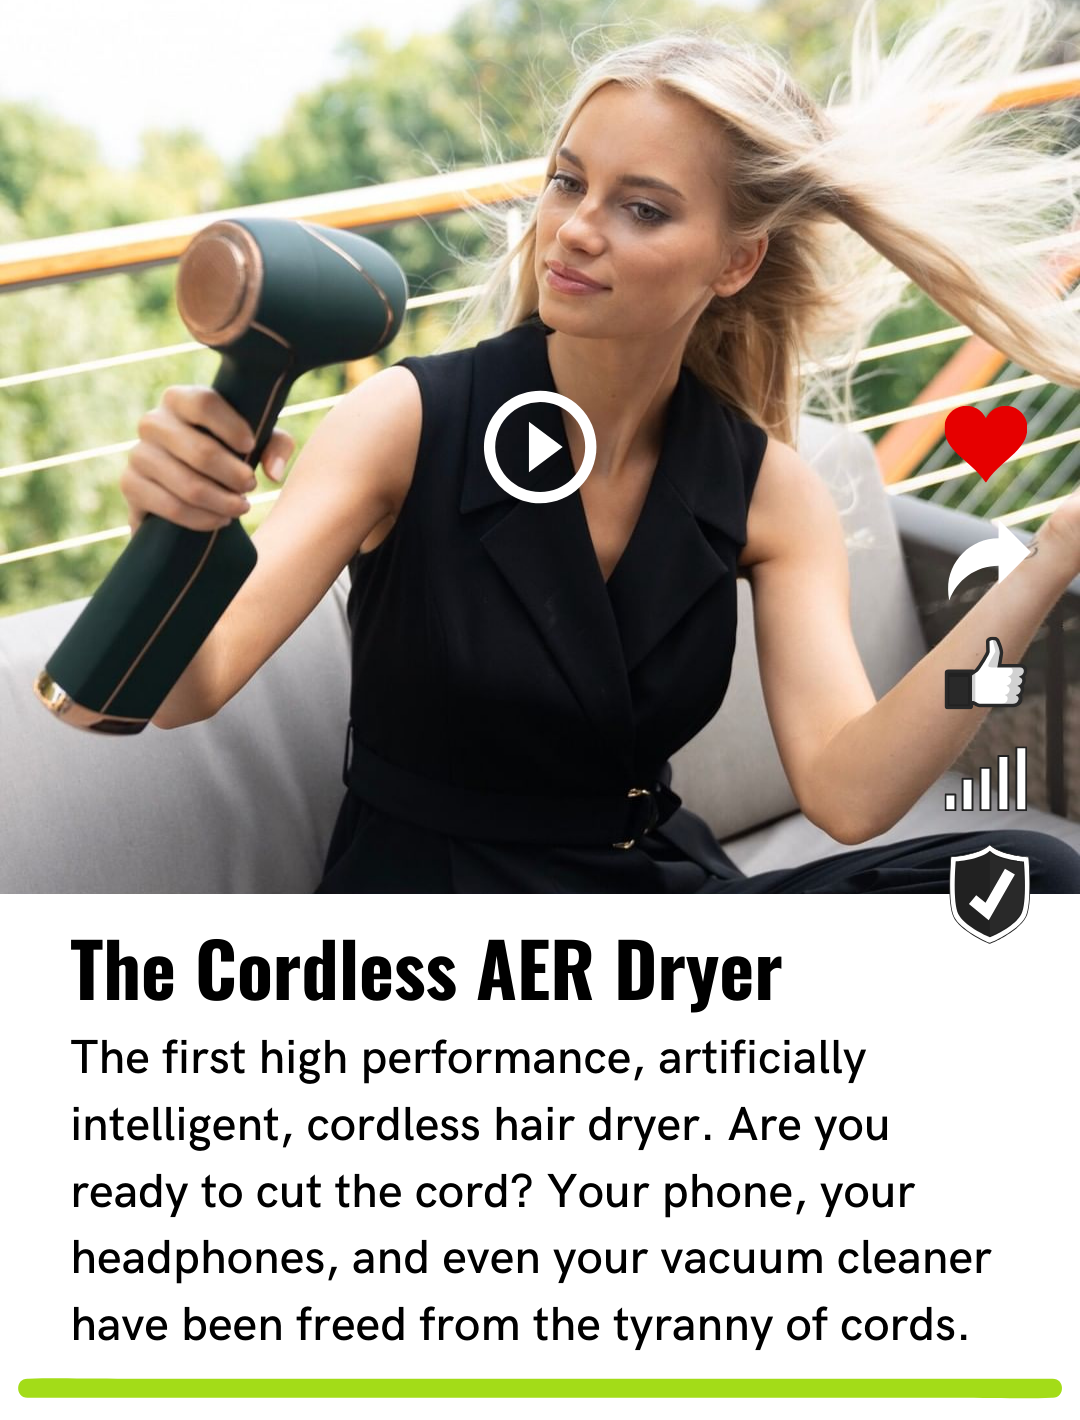 The cordless AER dryer